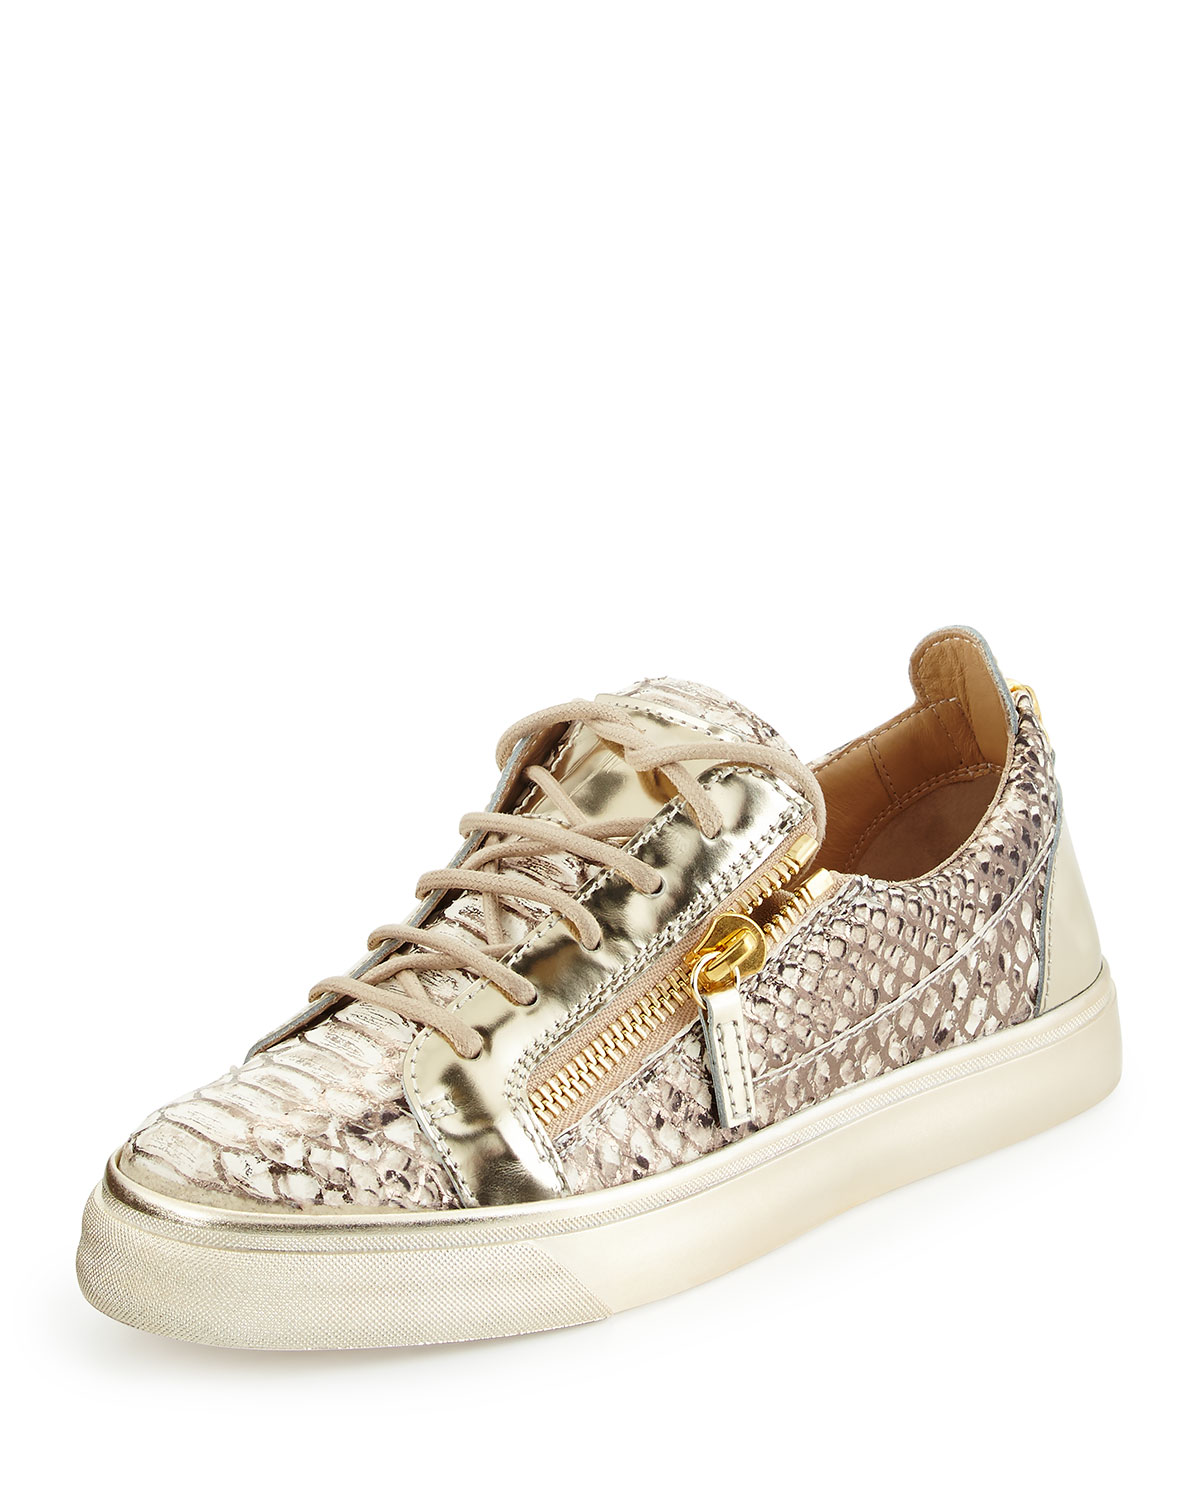 Giuseppe Zanotti London Snake-Print Low-Top Sneaker 03479e48c